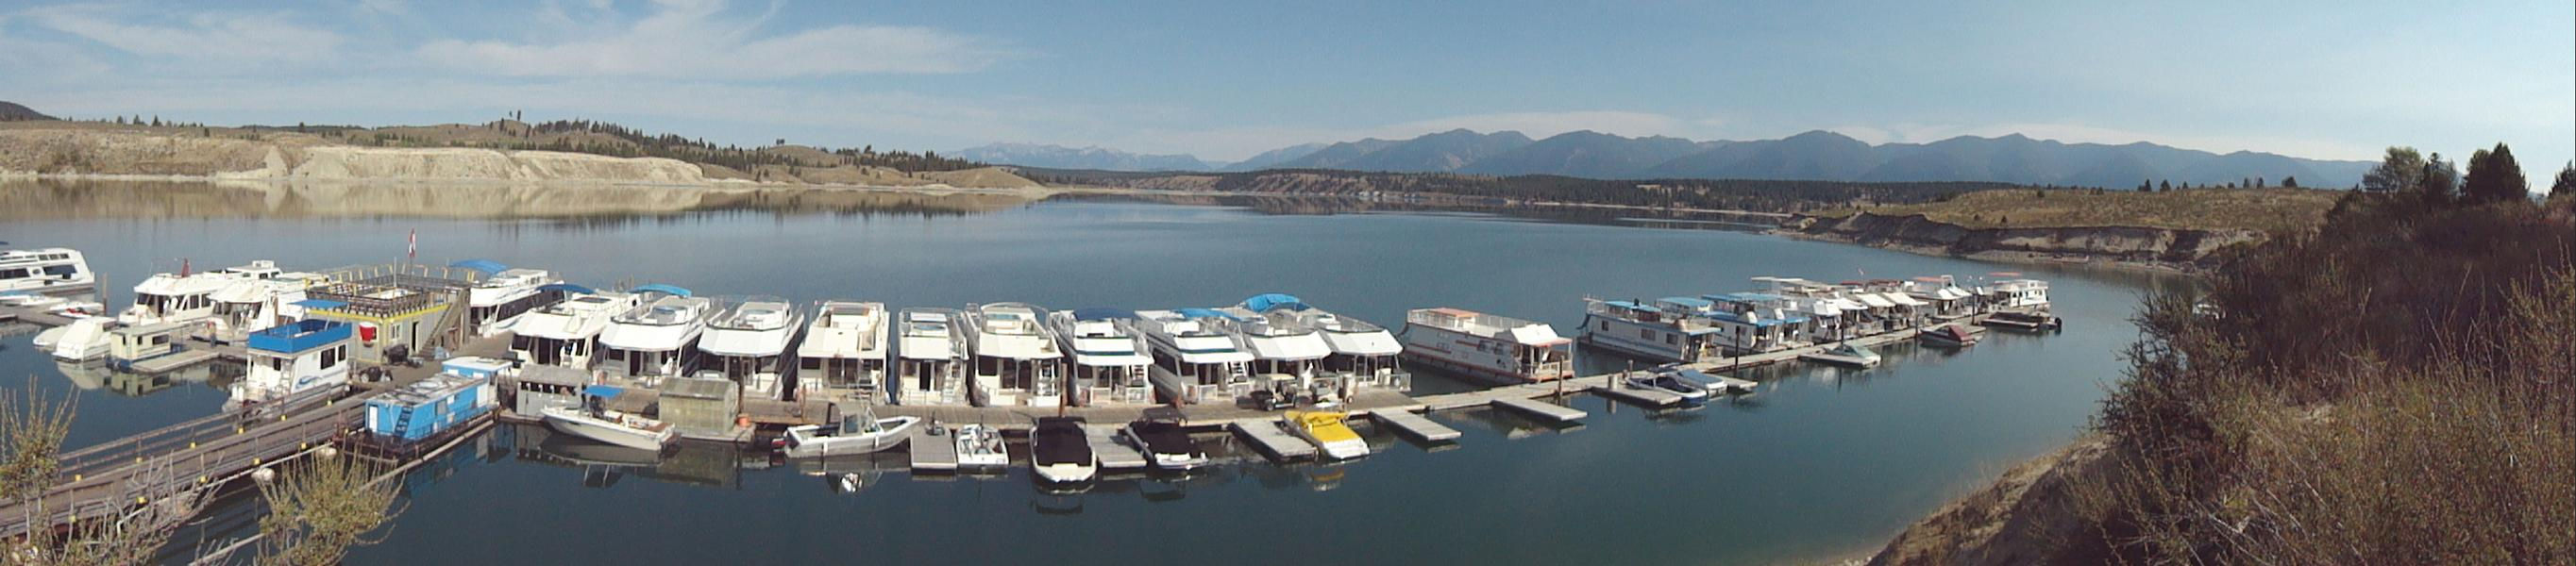 Choose from a fleet of comfortable houseboats for your lake vacation